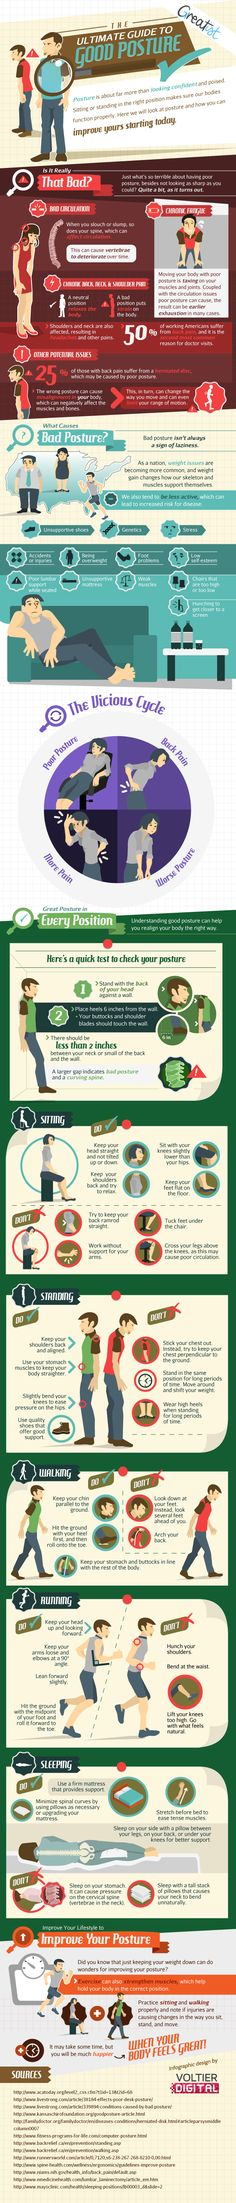 The Ultimate Guide to Good Posture | Greatist